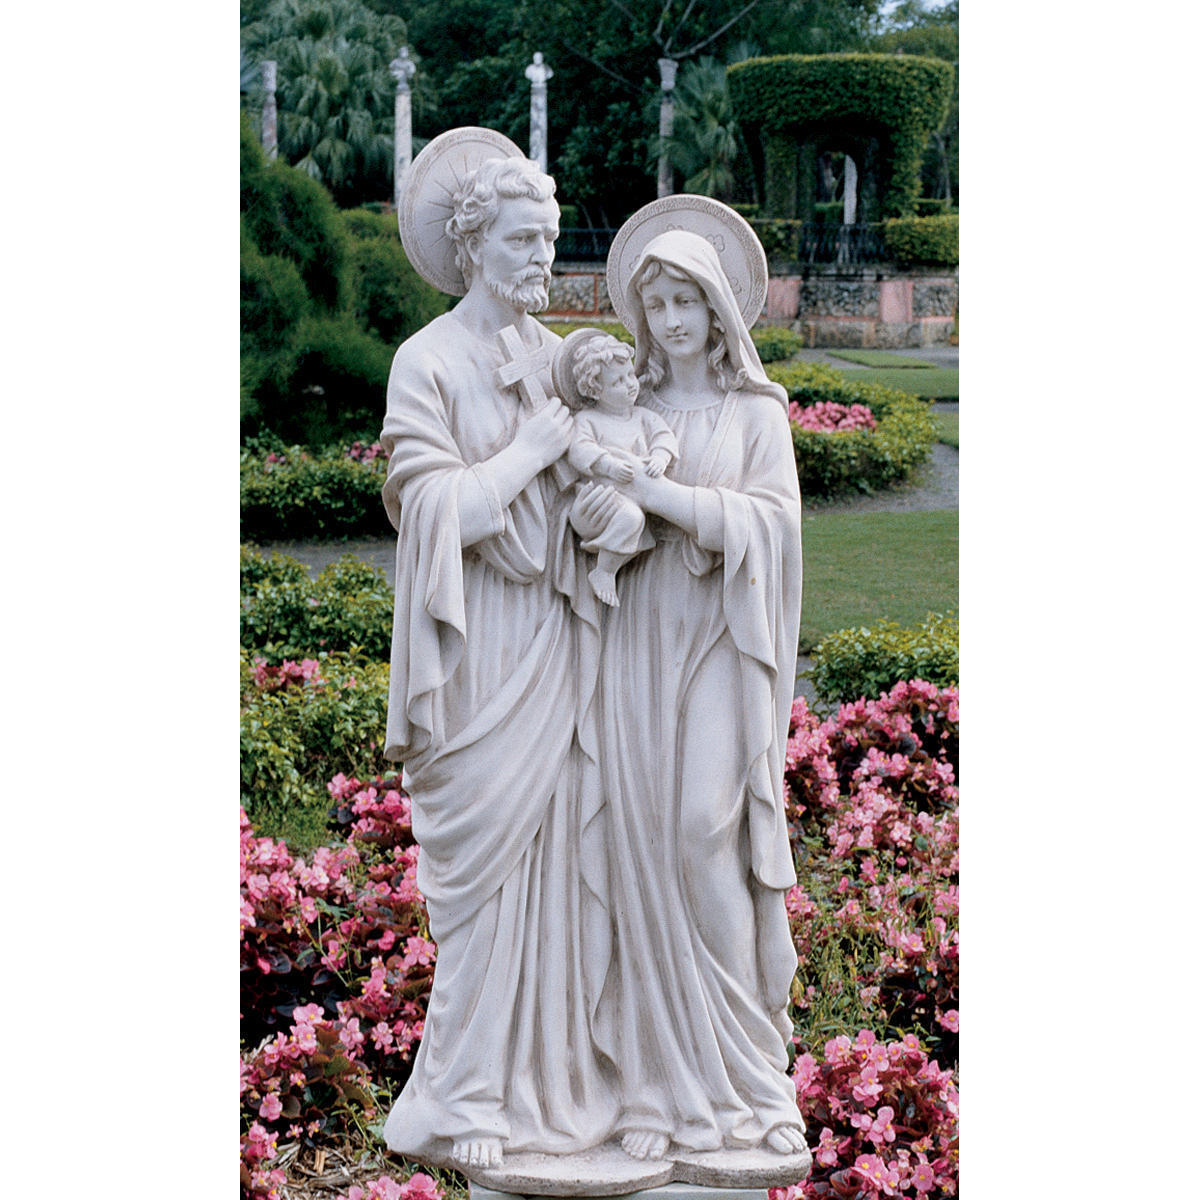 Design toscano 42 the holy family grande sculpture resin garden statue - Grande statue design ...